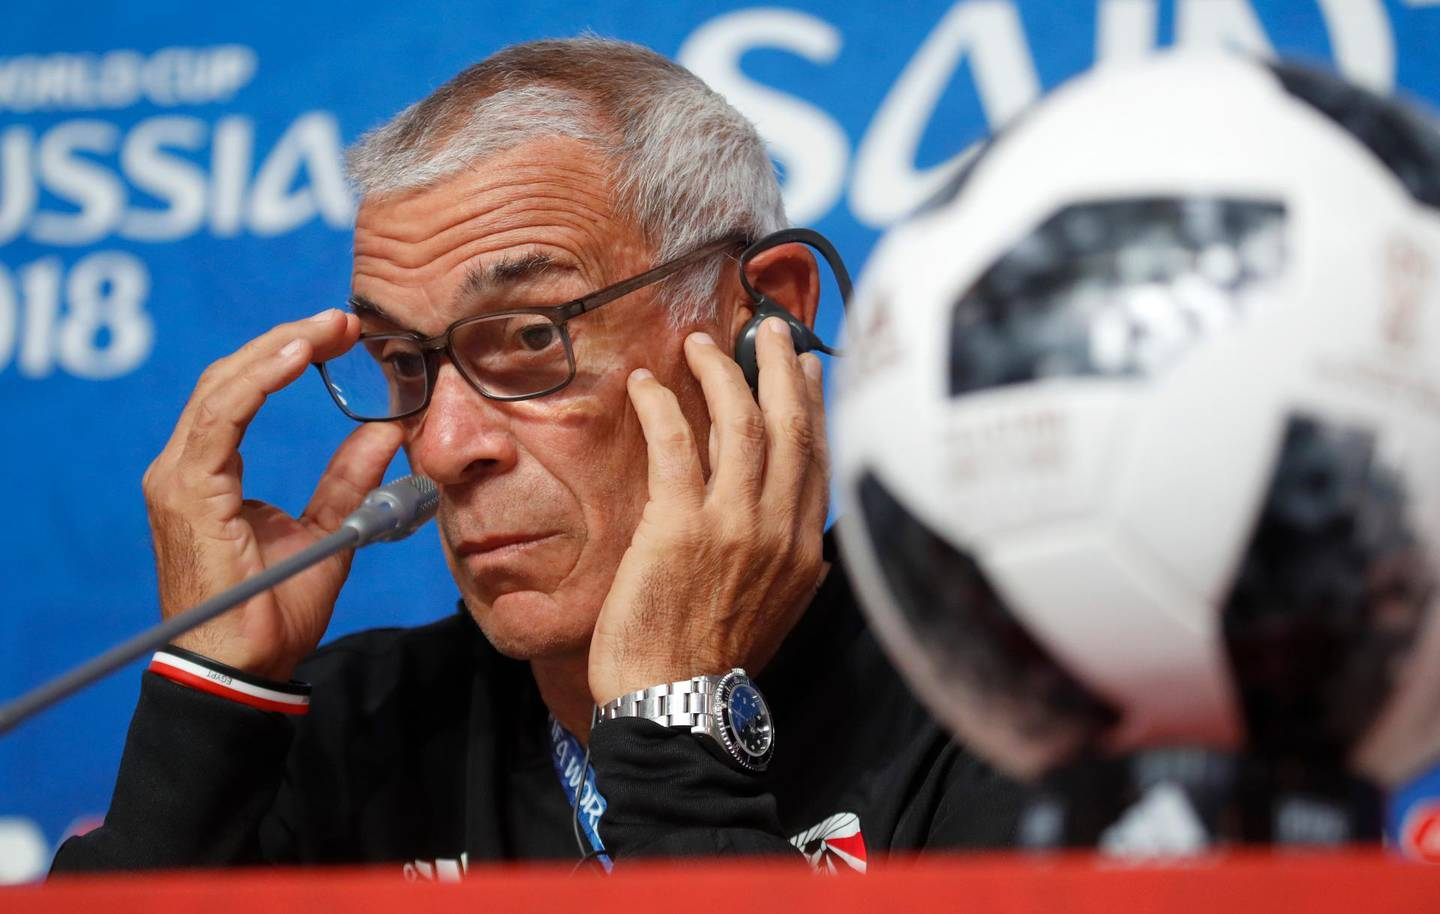 Egypt head coach Hector Cuper attends a news conference on the eve of the group A match between Russia and Egypt at the 2018 soccer World Cup in the St. Petersburg stadium in St. Petersburg, Russia, Monday, June 18, 2018. (AP Photo/Dmitri Lovetsky)